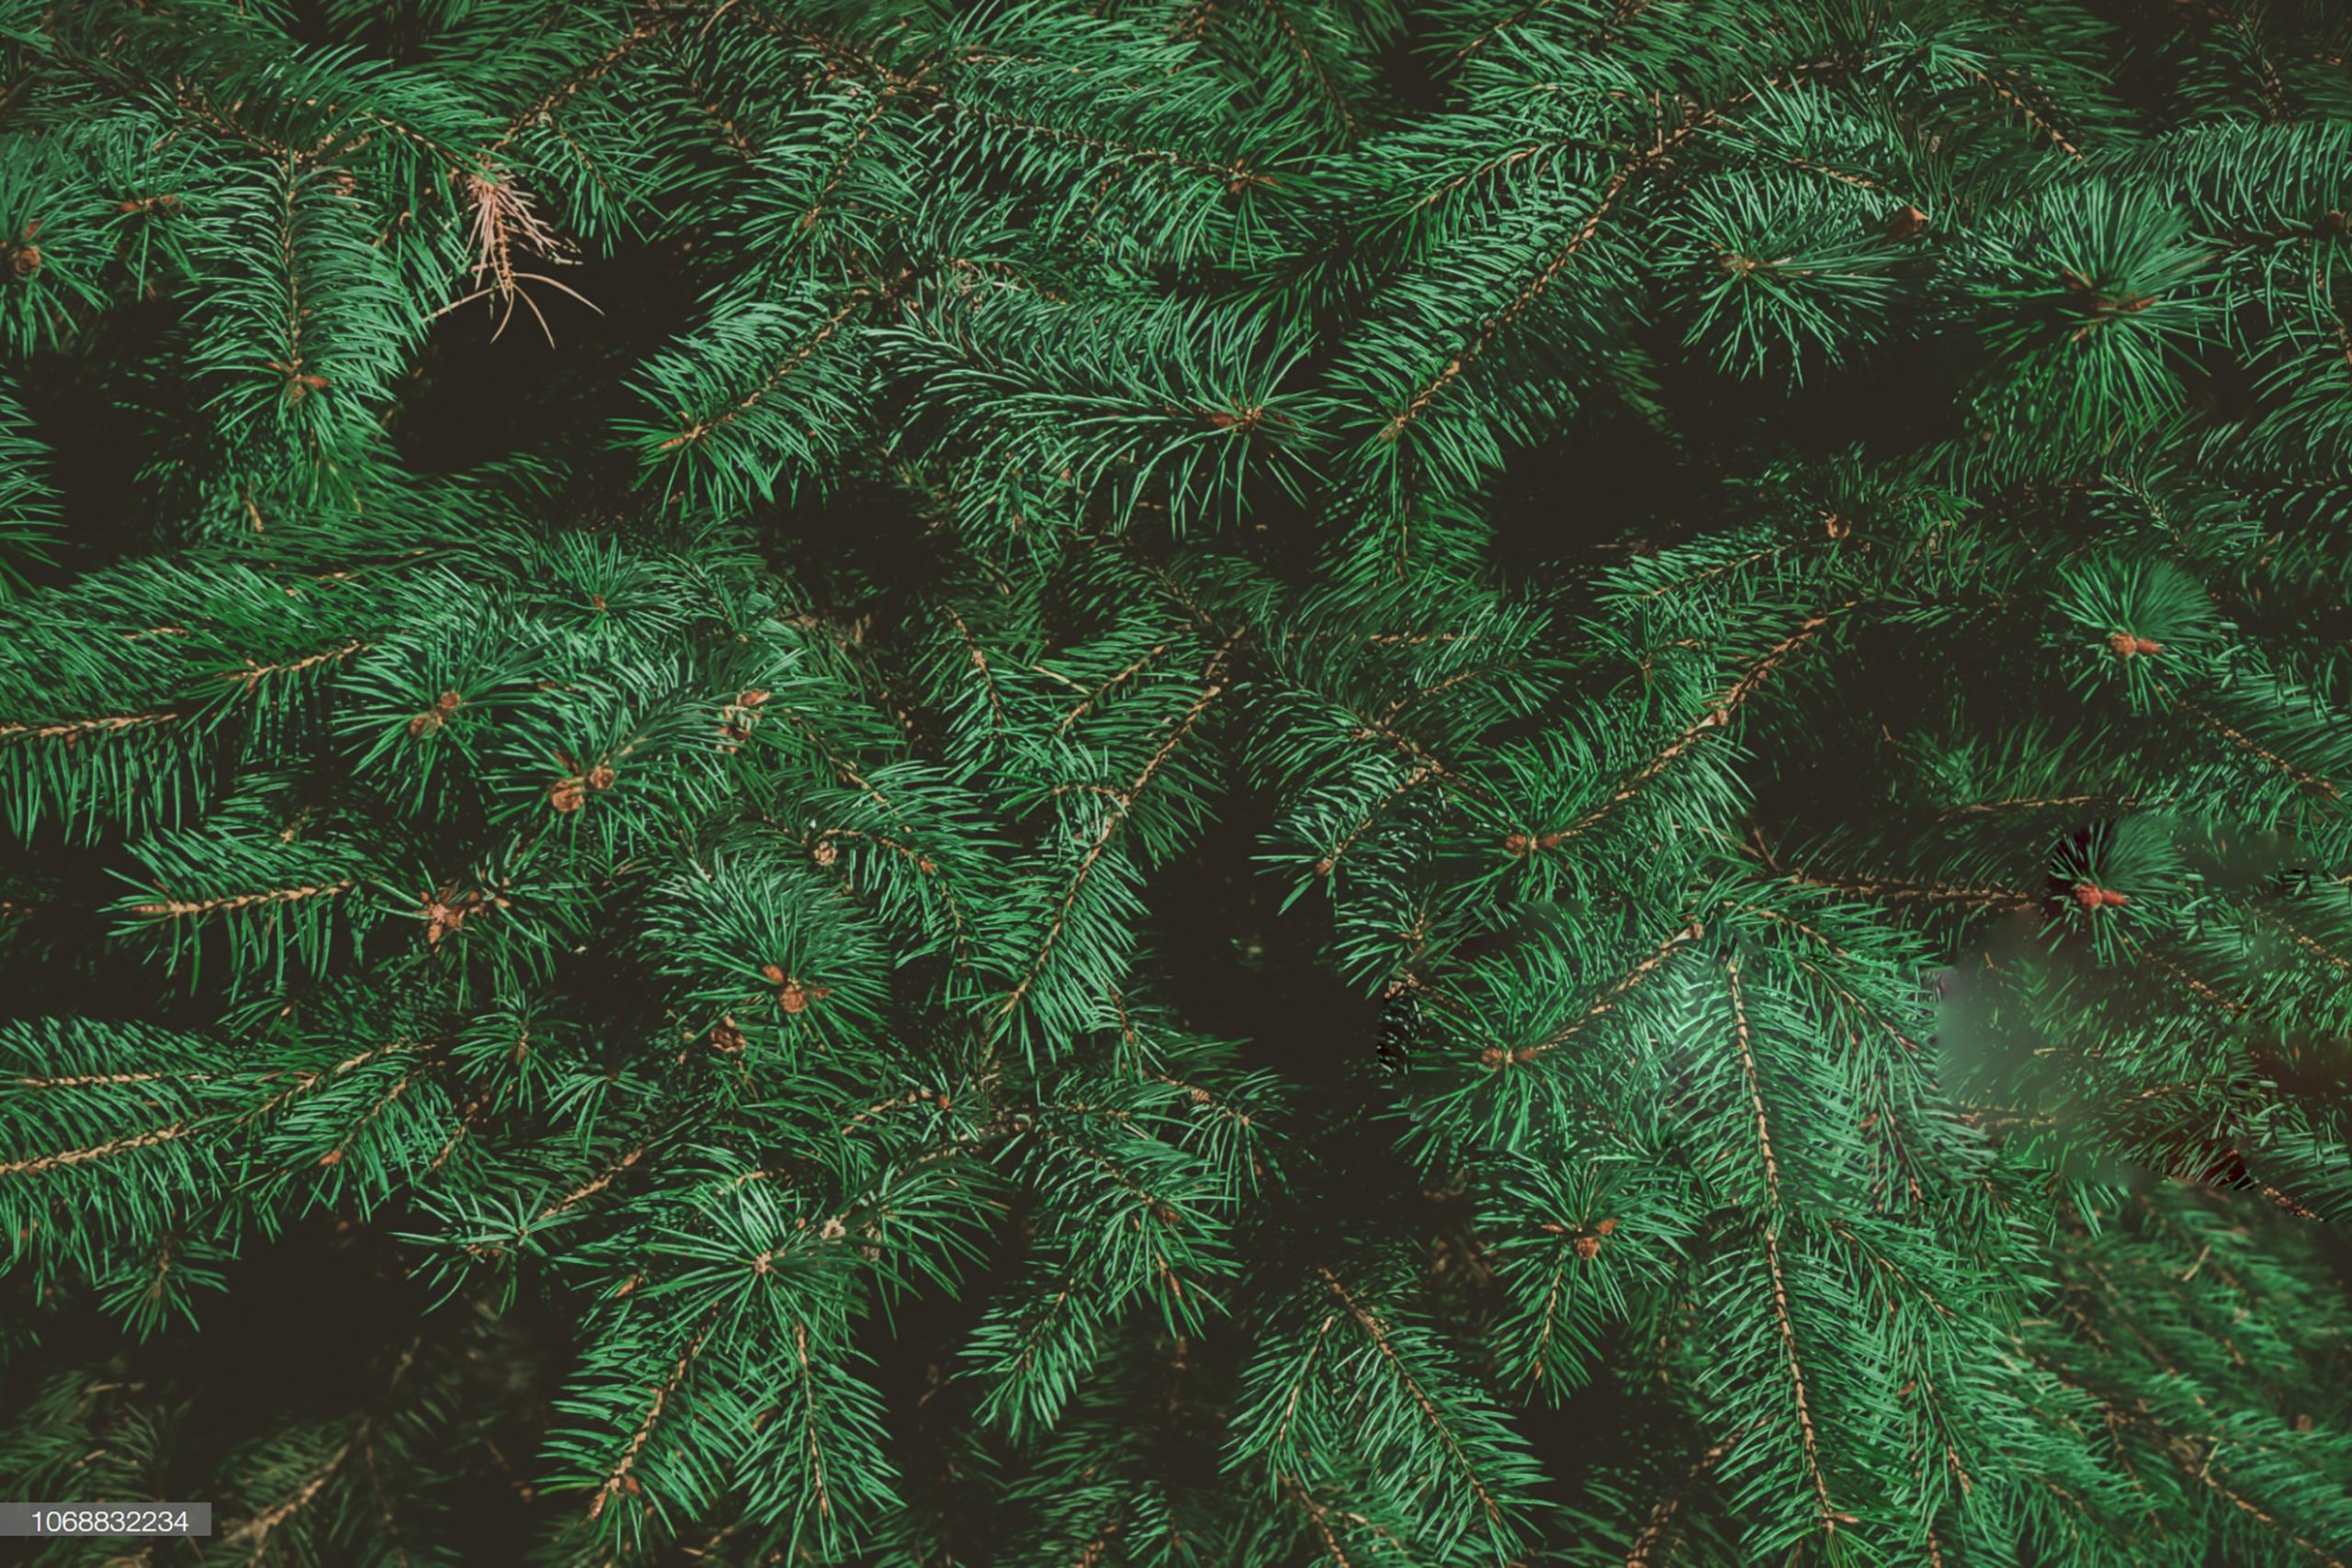 Evergreen Tree Care and Diseases